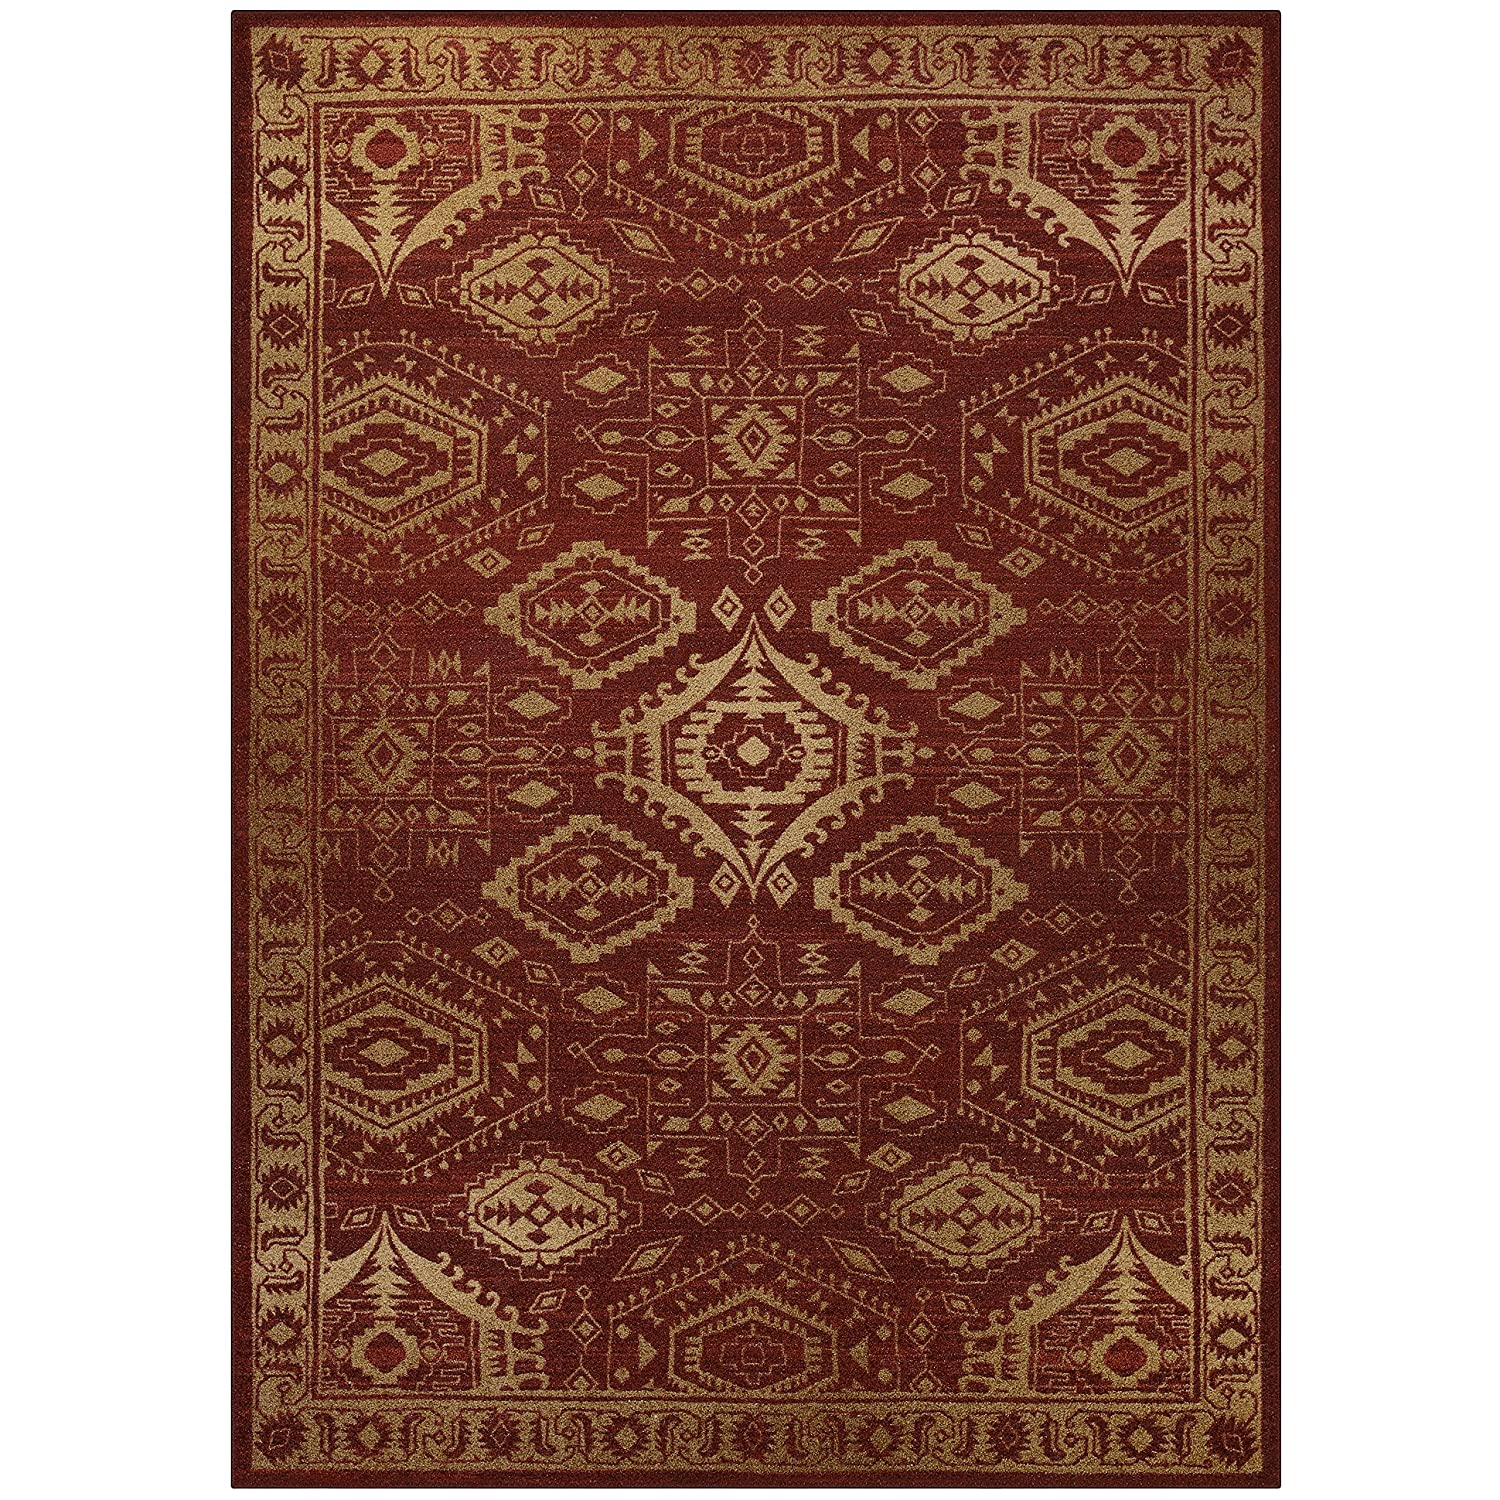 Made in USA Wineberry//Teal Kitchen Rug -Georgina Maples Rugs Kitchen Rug Georgina 18 x 210 Non Skid Small Accent Throw Rugs for Entryway and Bedroom